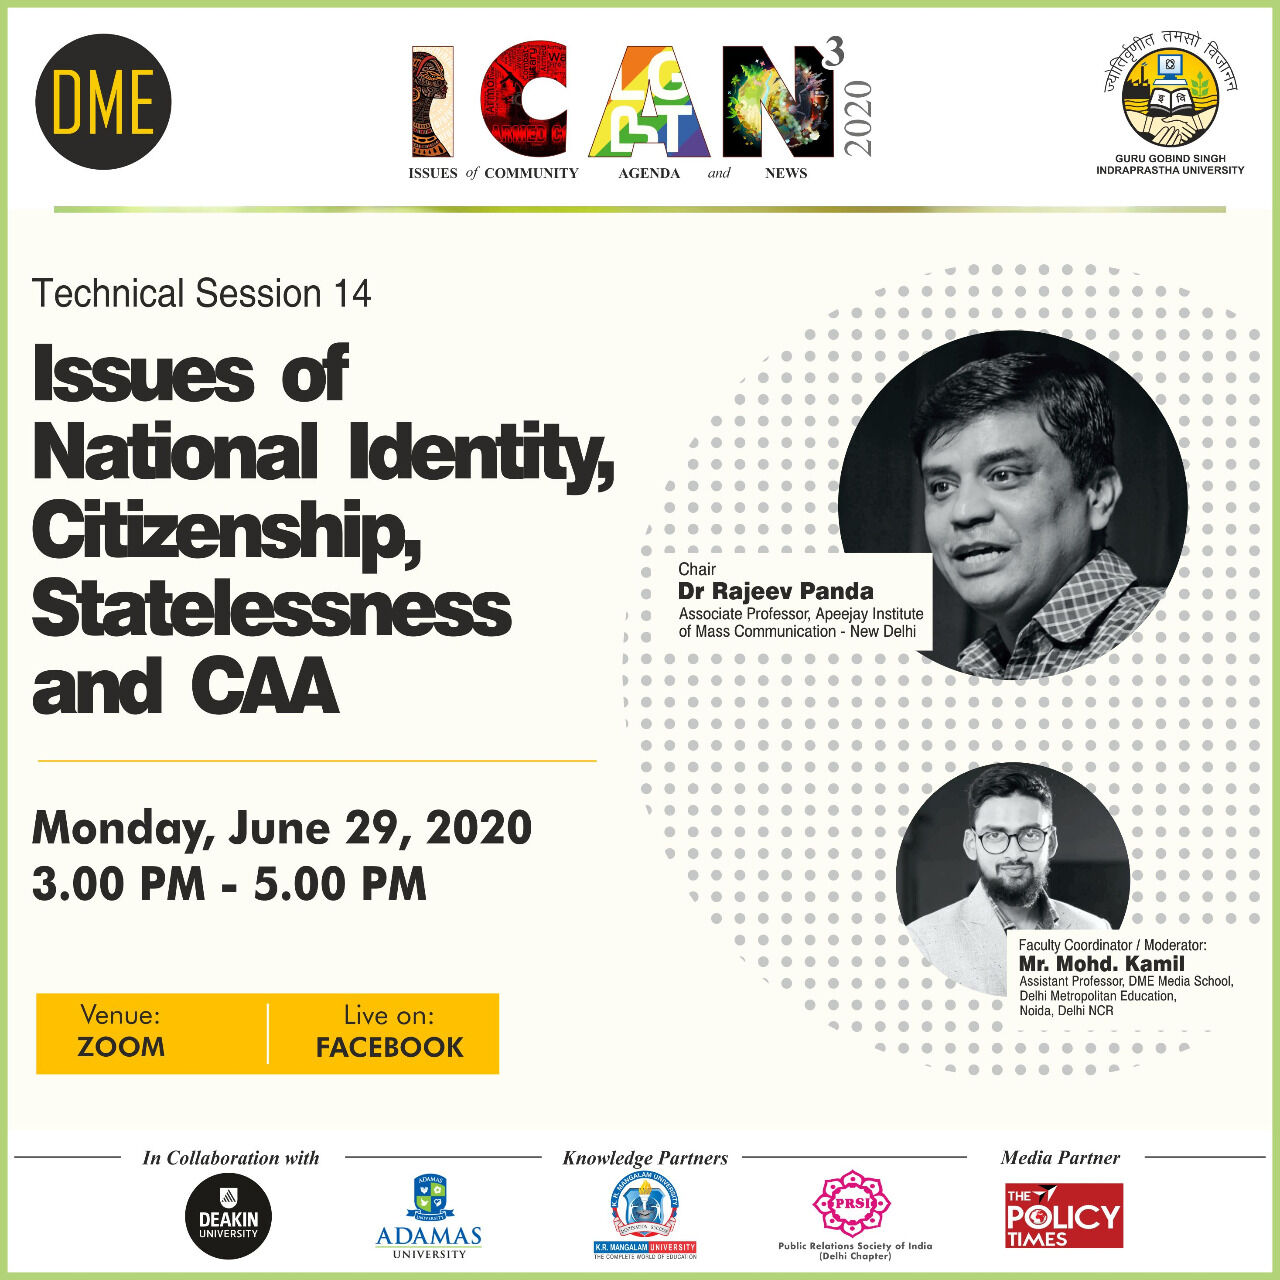 Issues of National Identity, Citizenship, Statelessness and CAA